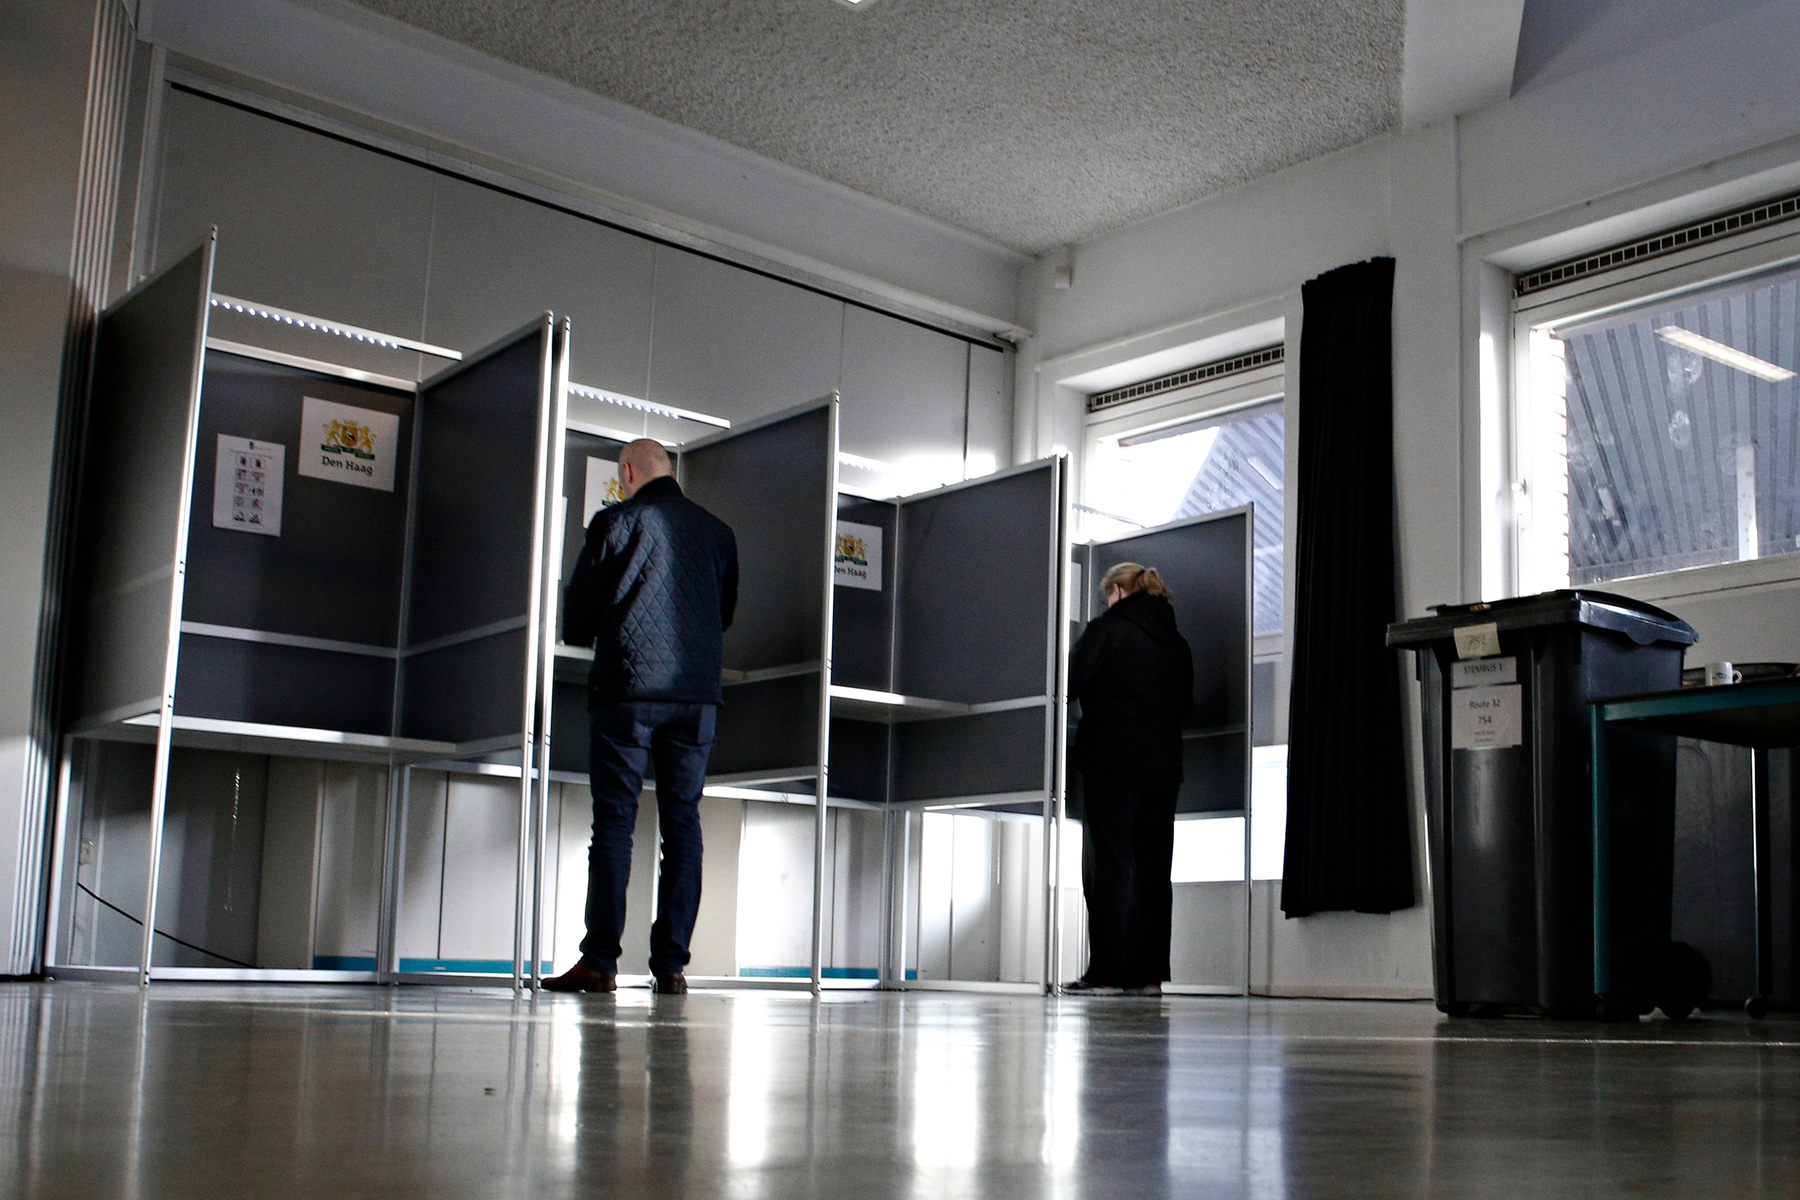 Polling station in the Netherlands